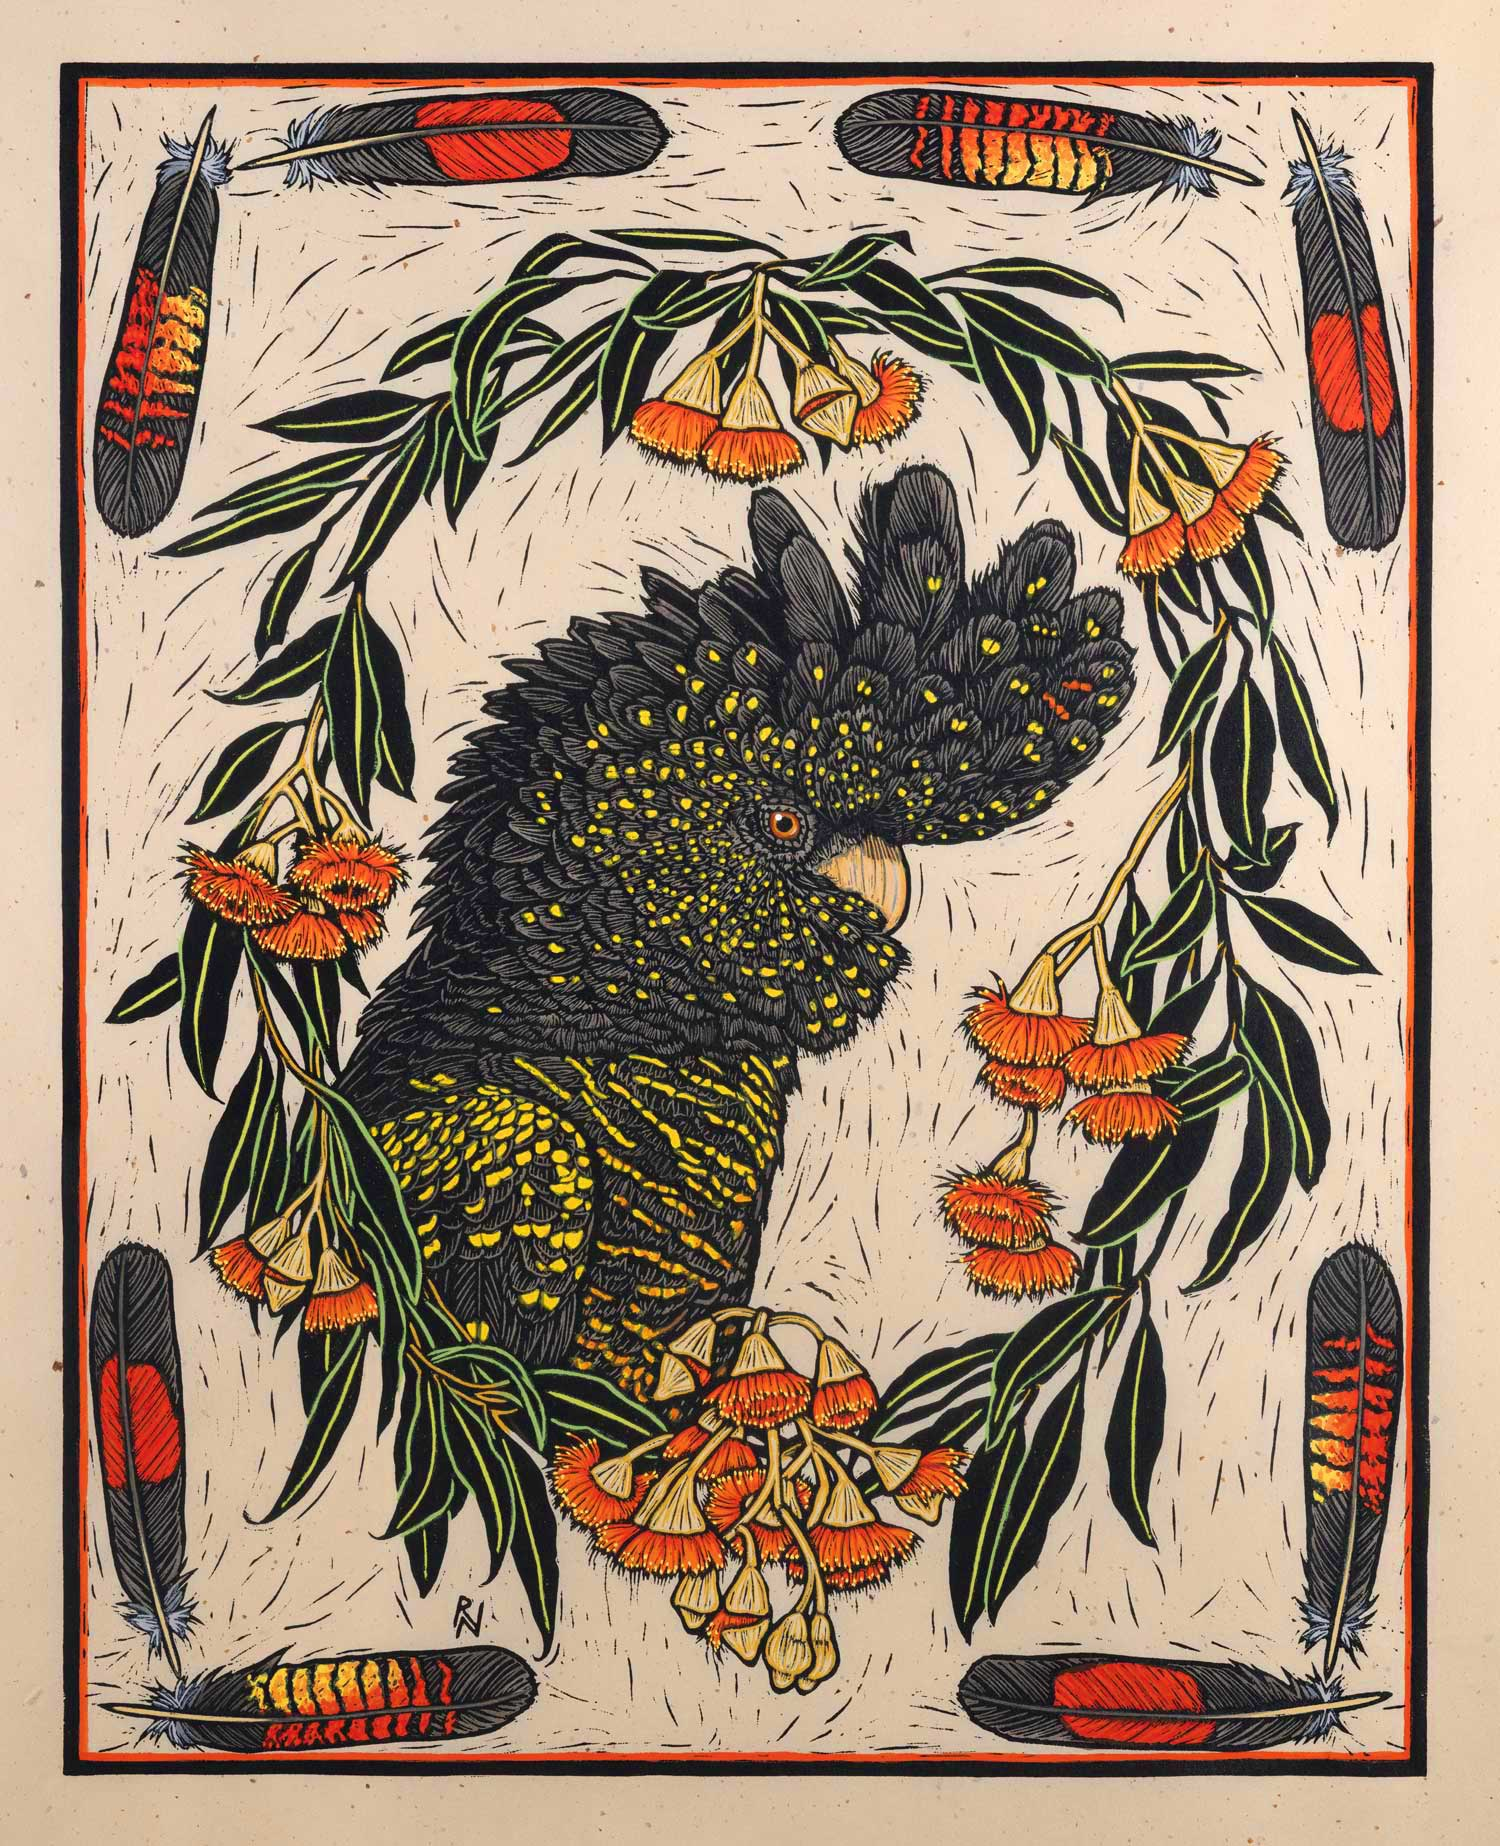 Black Cockatoo and gum Blossom  49 x 39 cm Edition of 50  Hand coloured linocut on handmade Japanese paper  $1,100